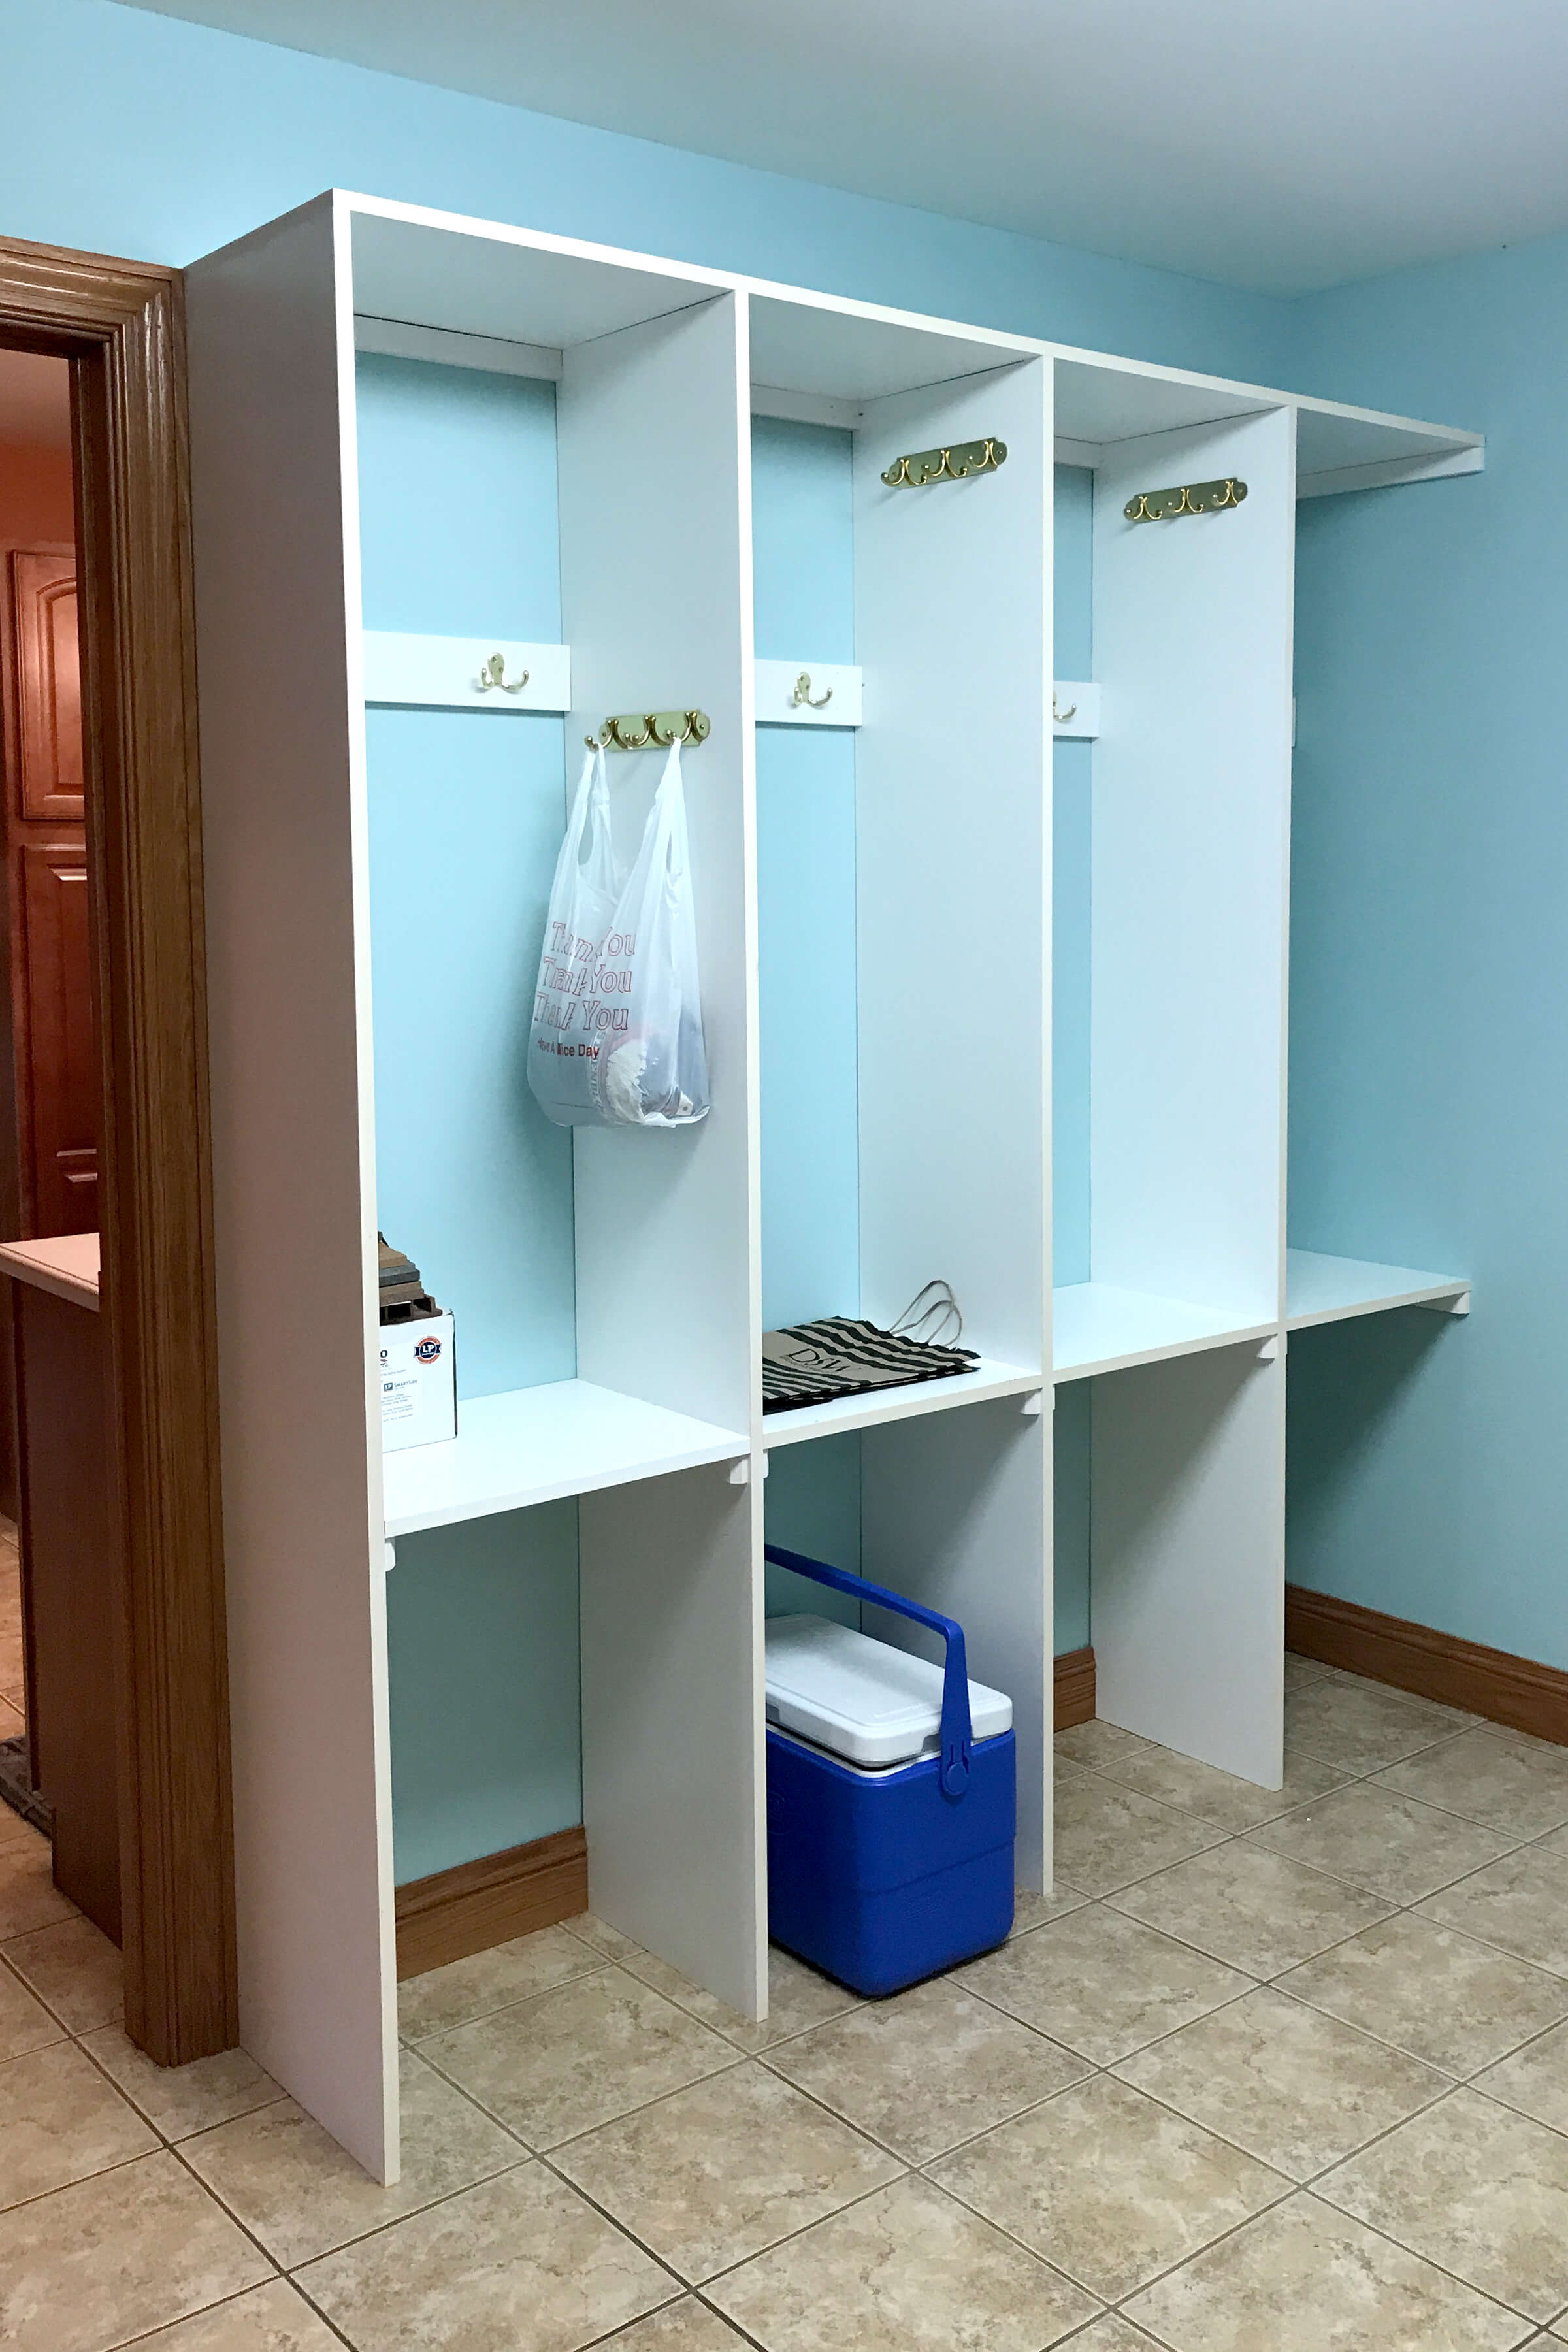 Before photo of the outdated entryway lockers